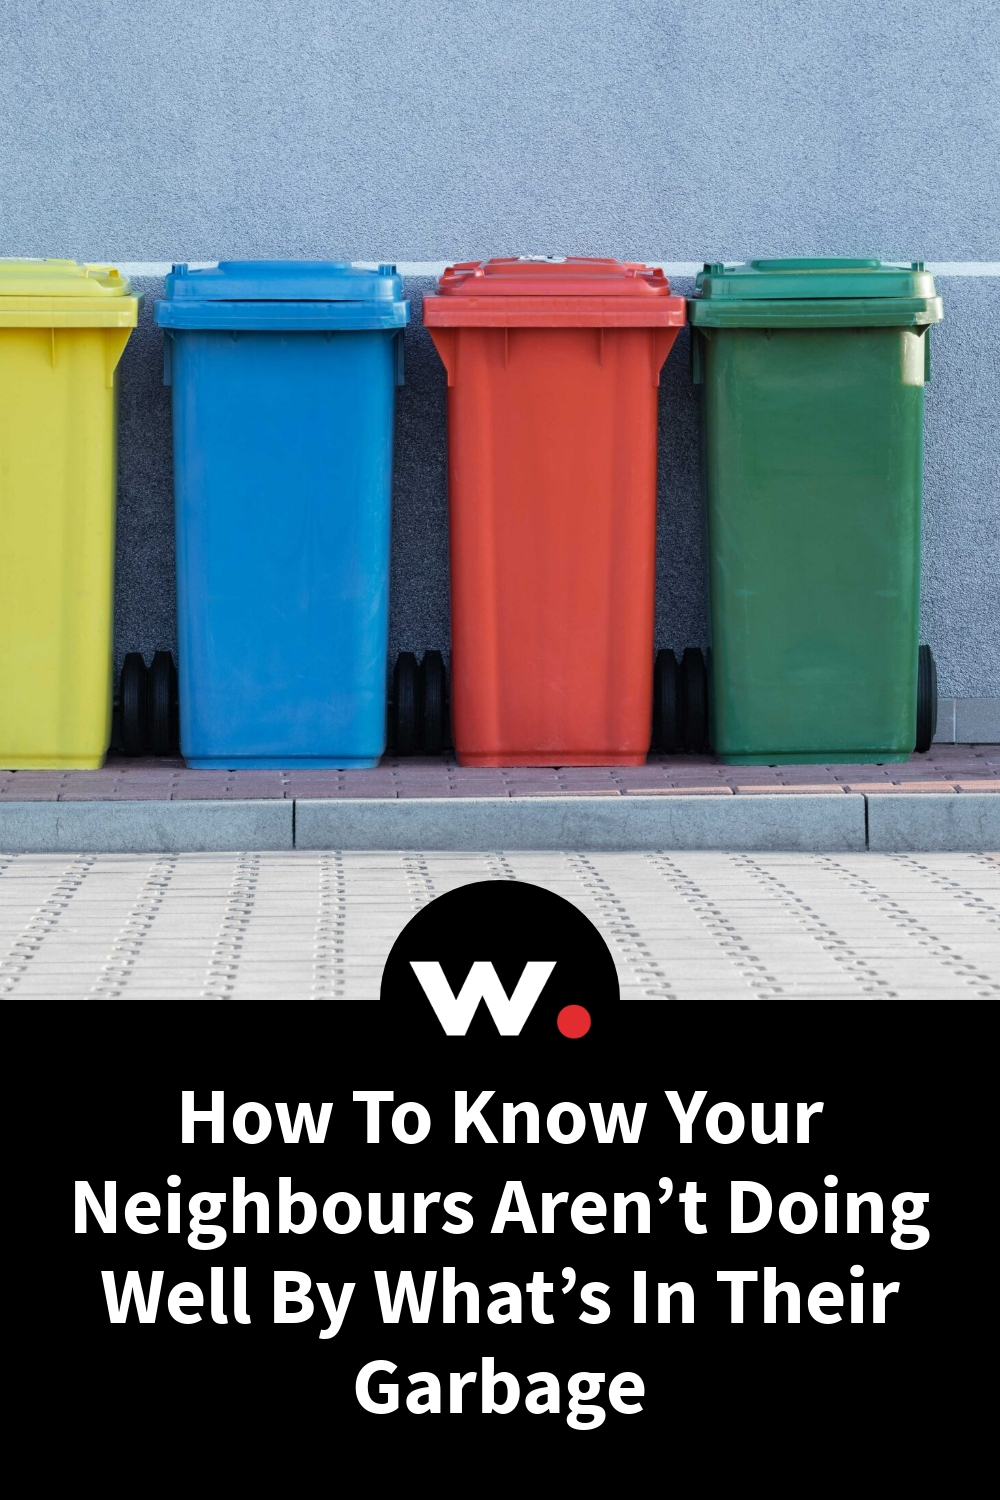 How To Know Your Neighbours Aren't Doing Well By What's In Their Garbage